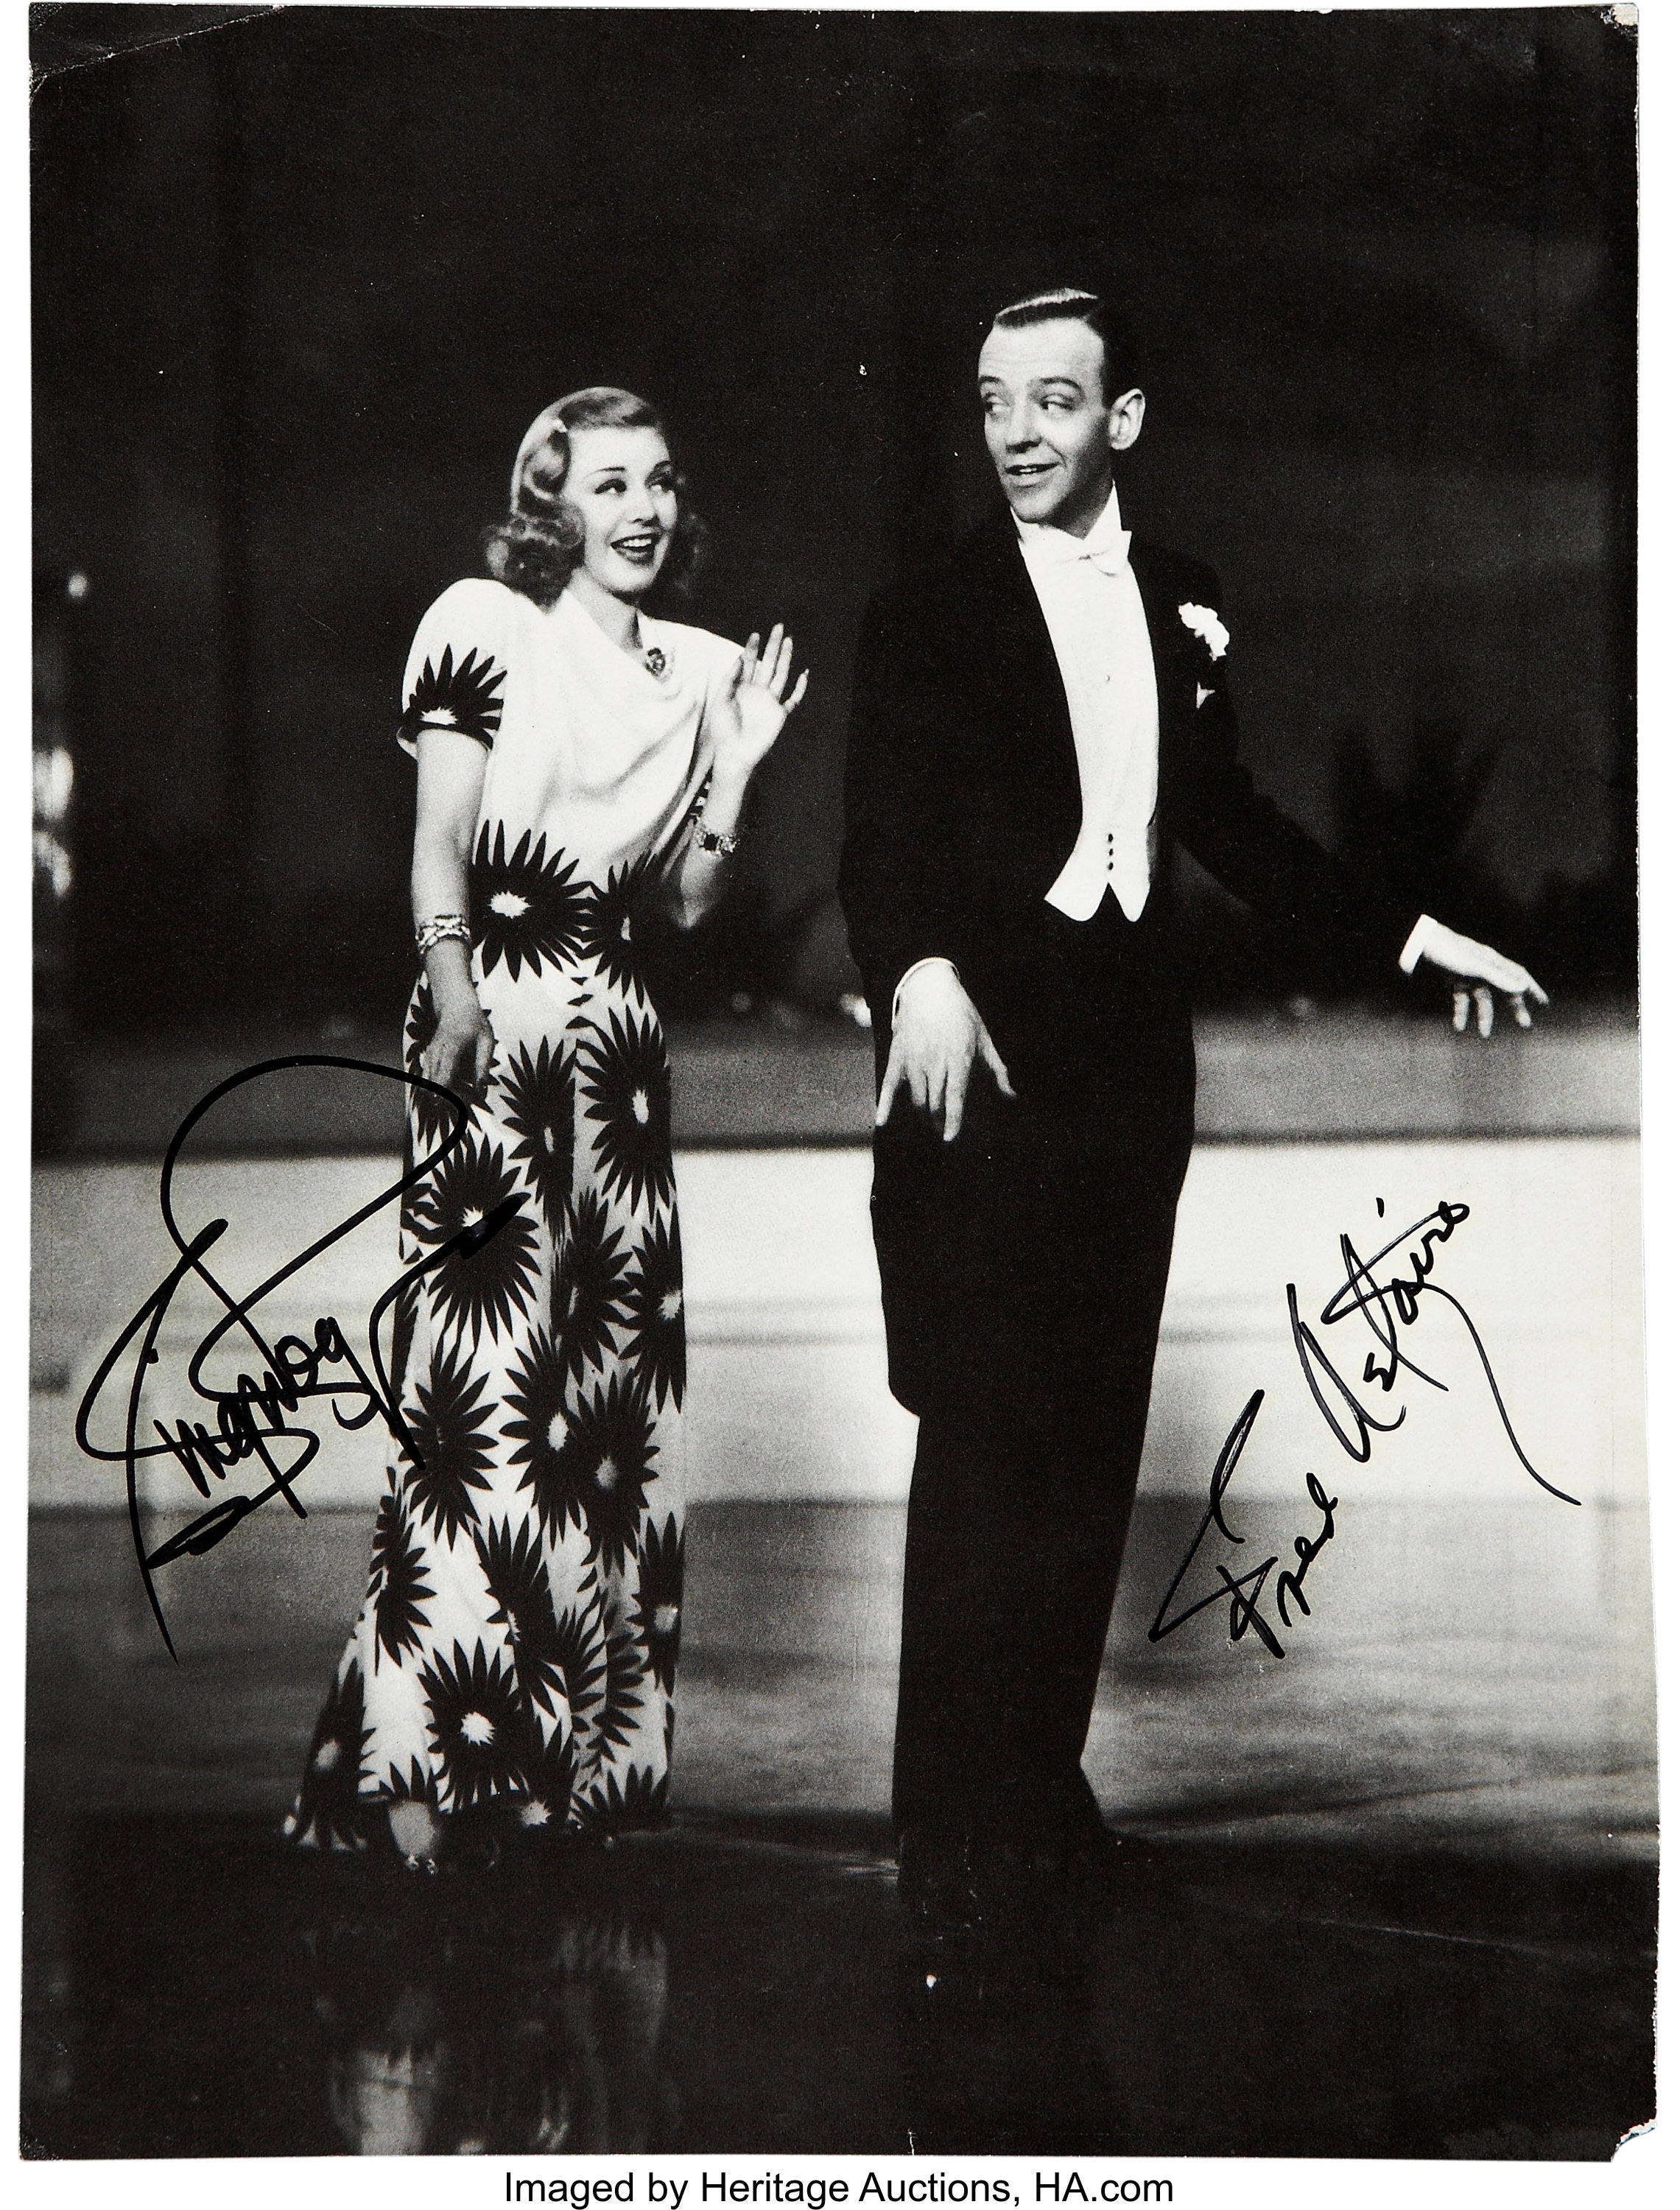 Fred Astaire And Ginger Rogers Signed Photo Movie Tv Lot 51086 Heritage Auctions